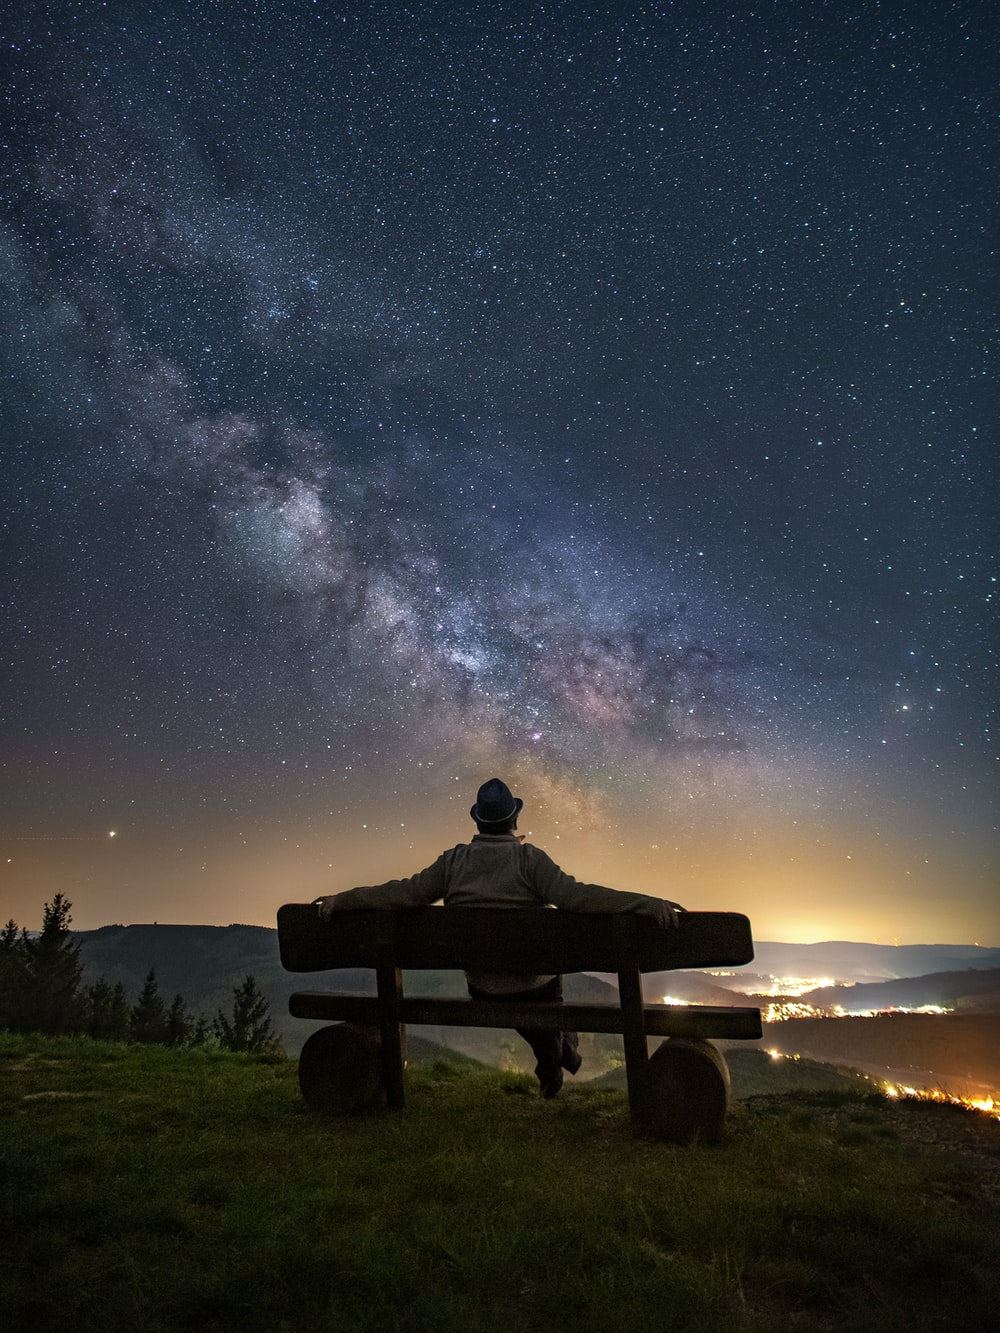 man and woman sitting on bench under starry night